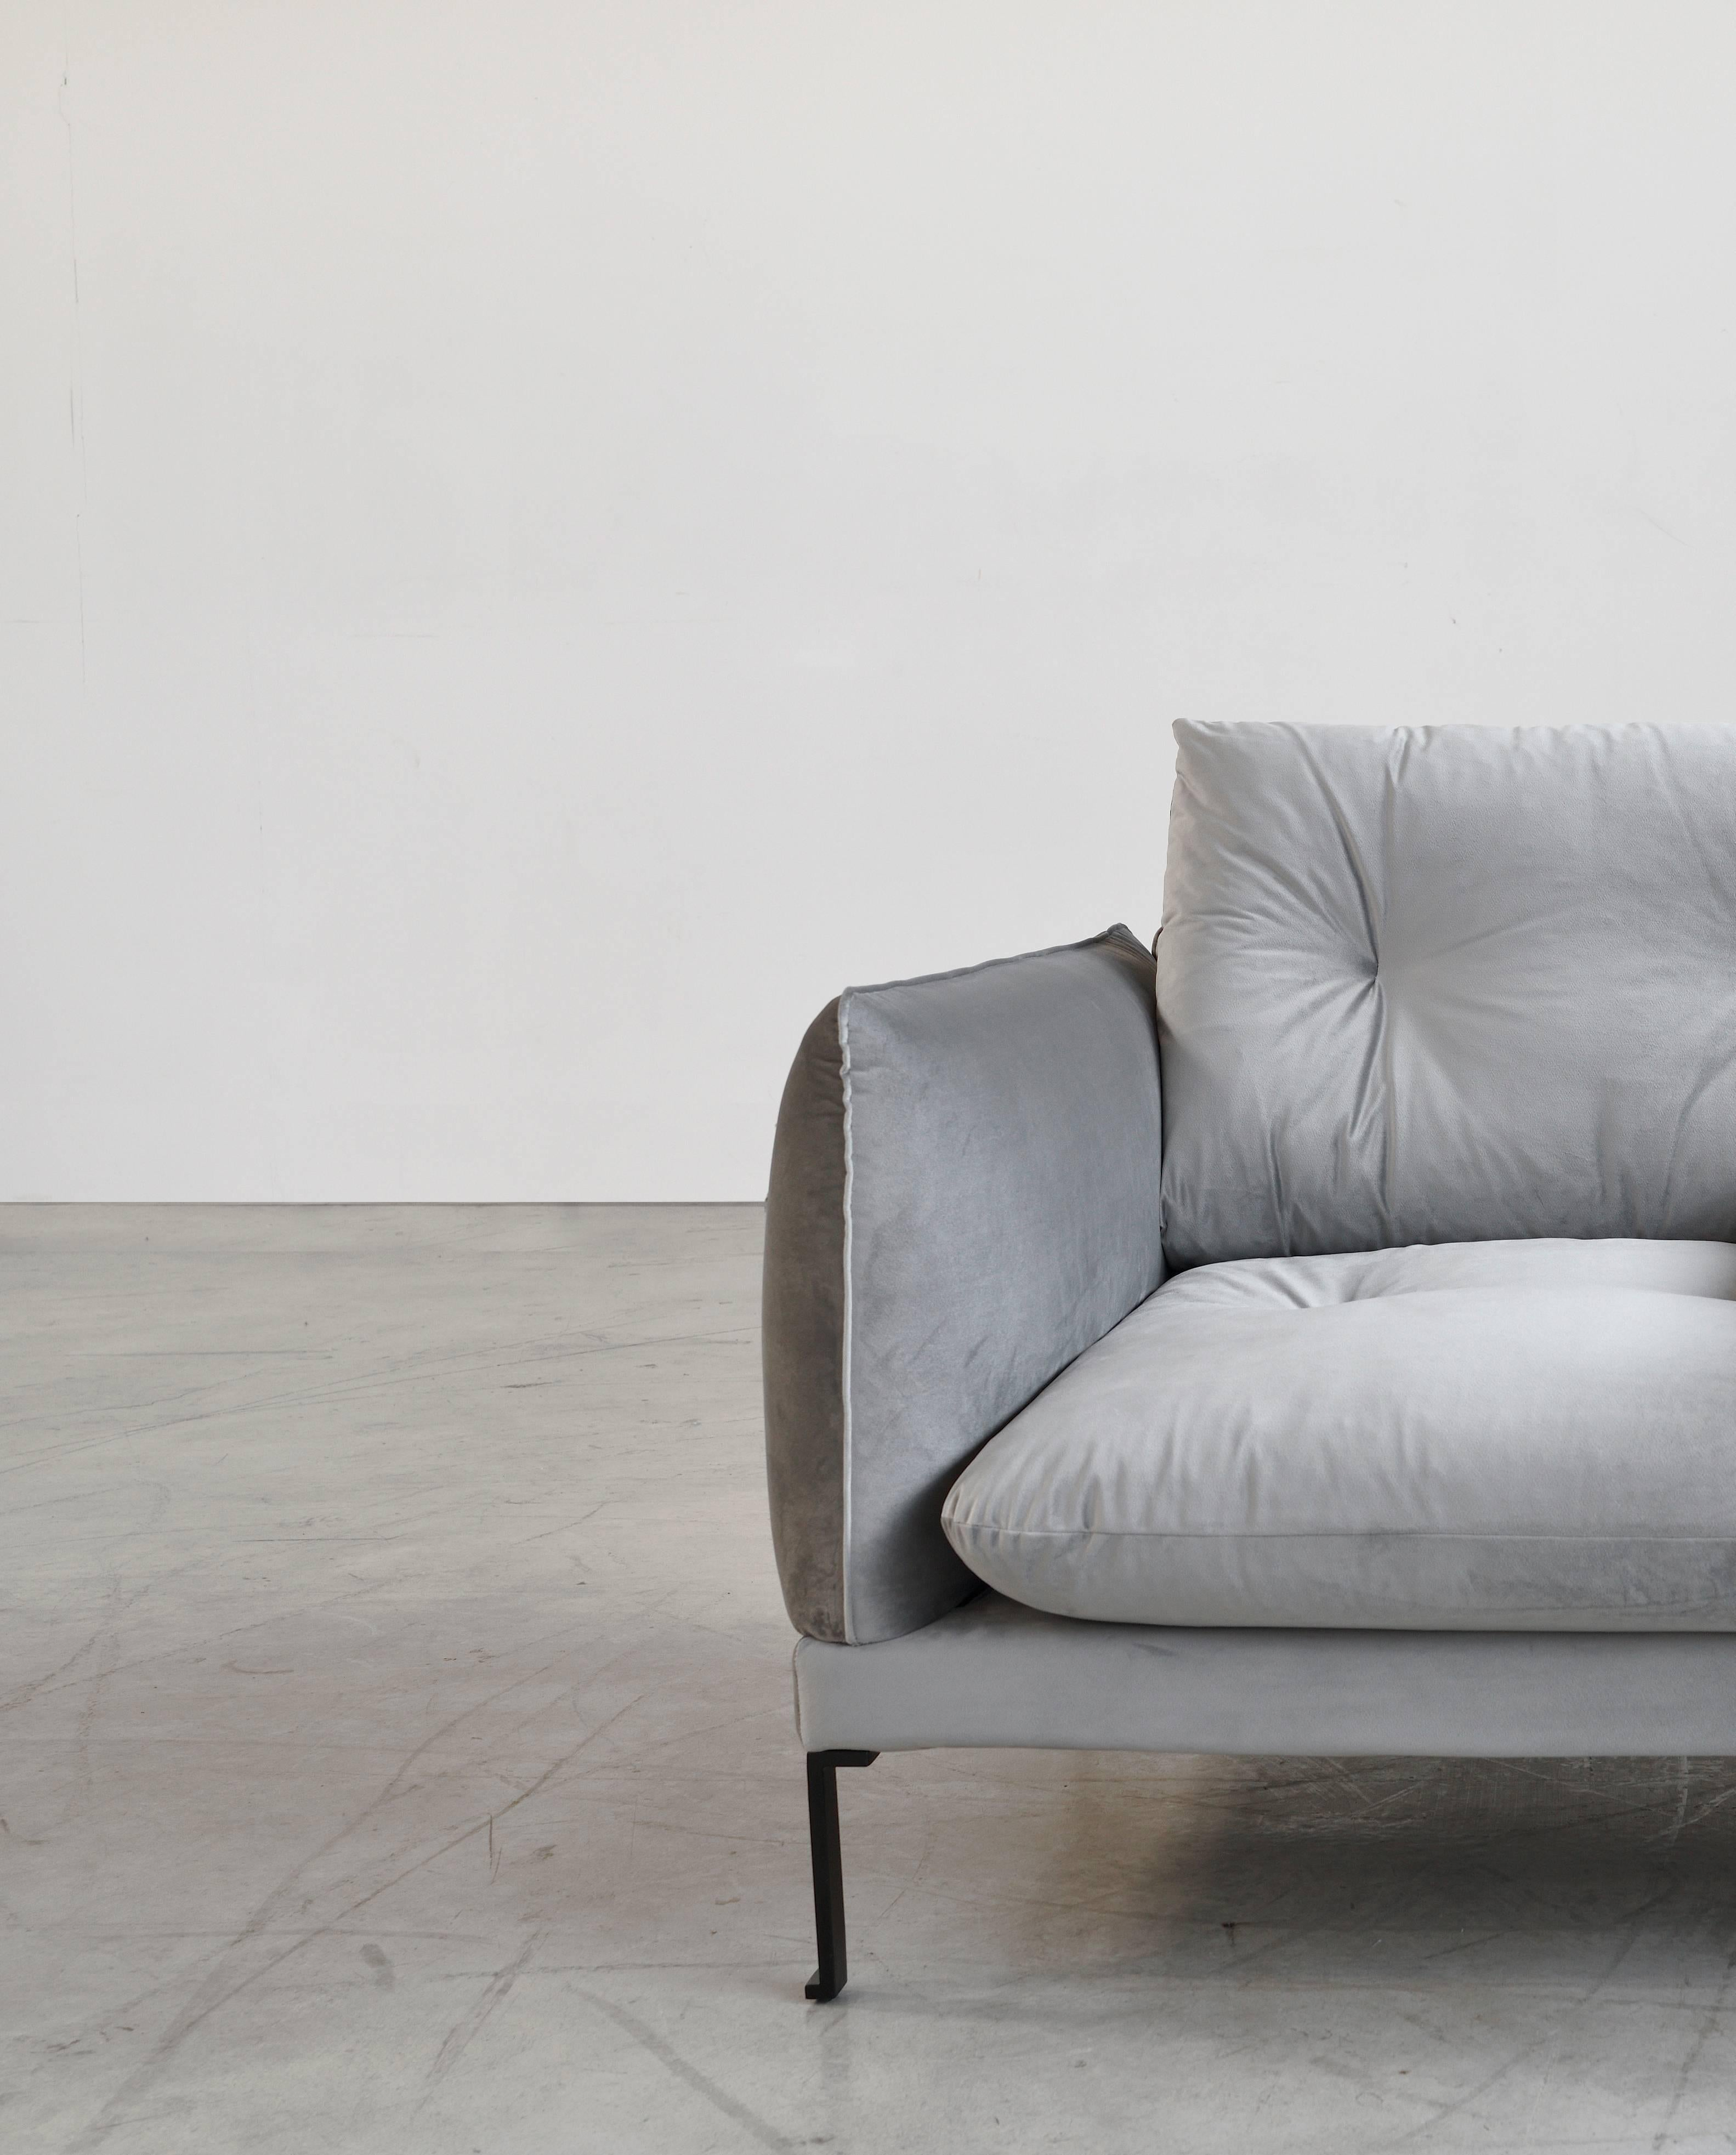 Hand Crafted Santorini Handmade Contemporary Sofa, Tufted Cushions, Fabric  Cover, Metal Legs